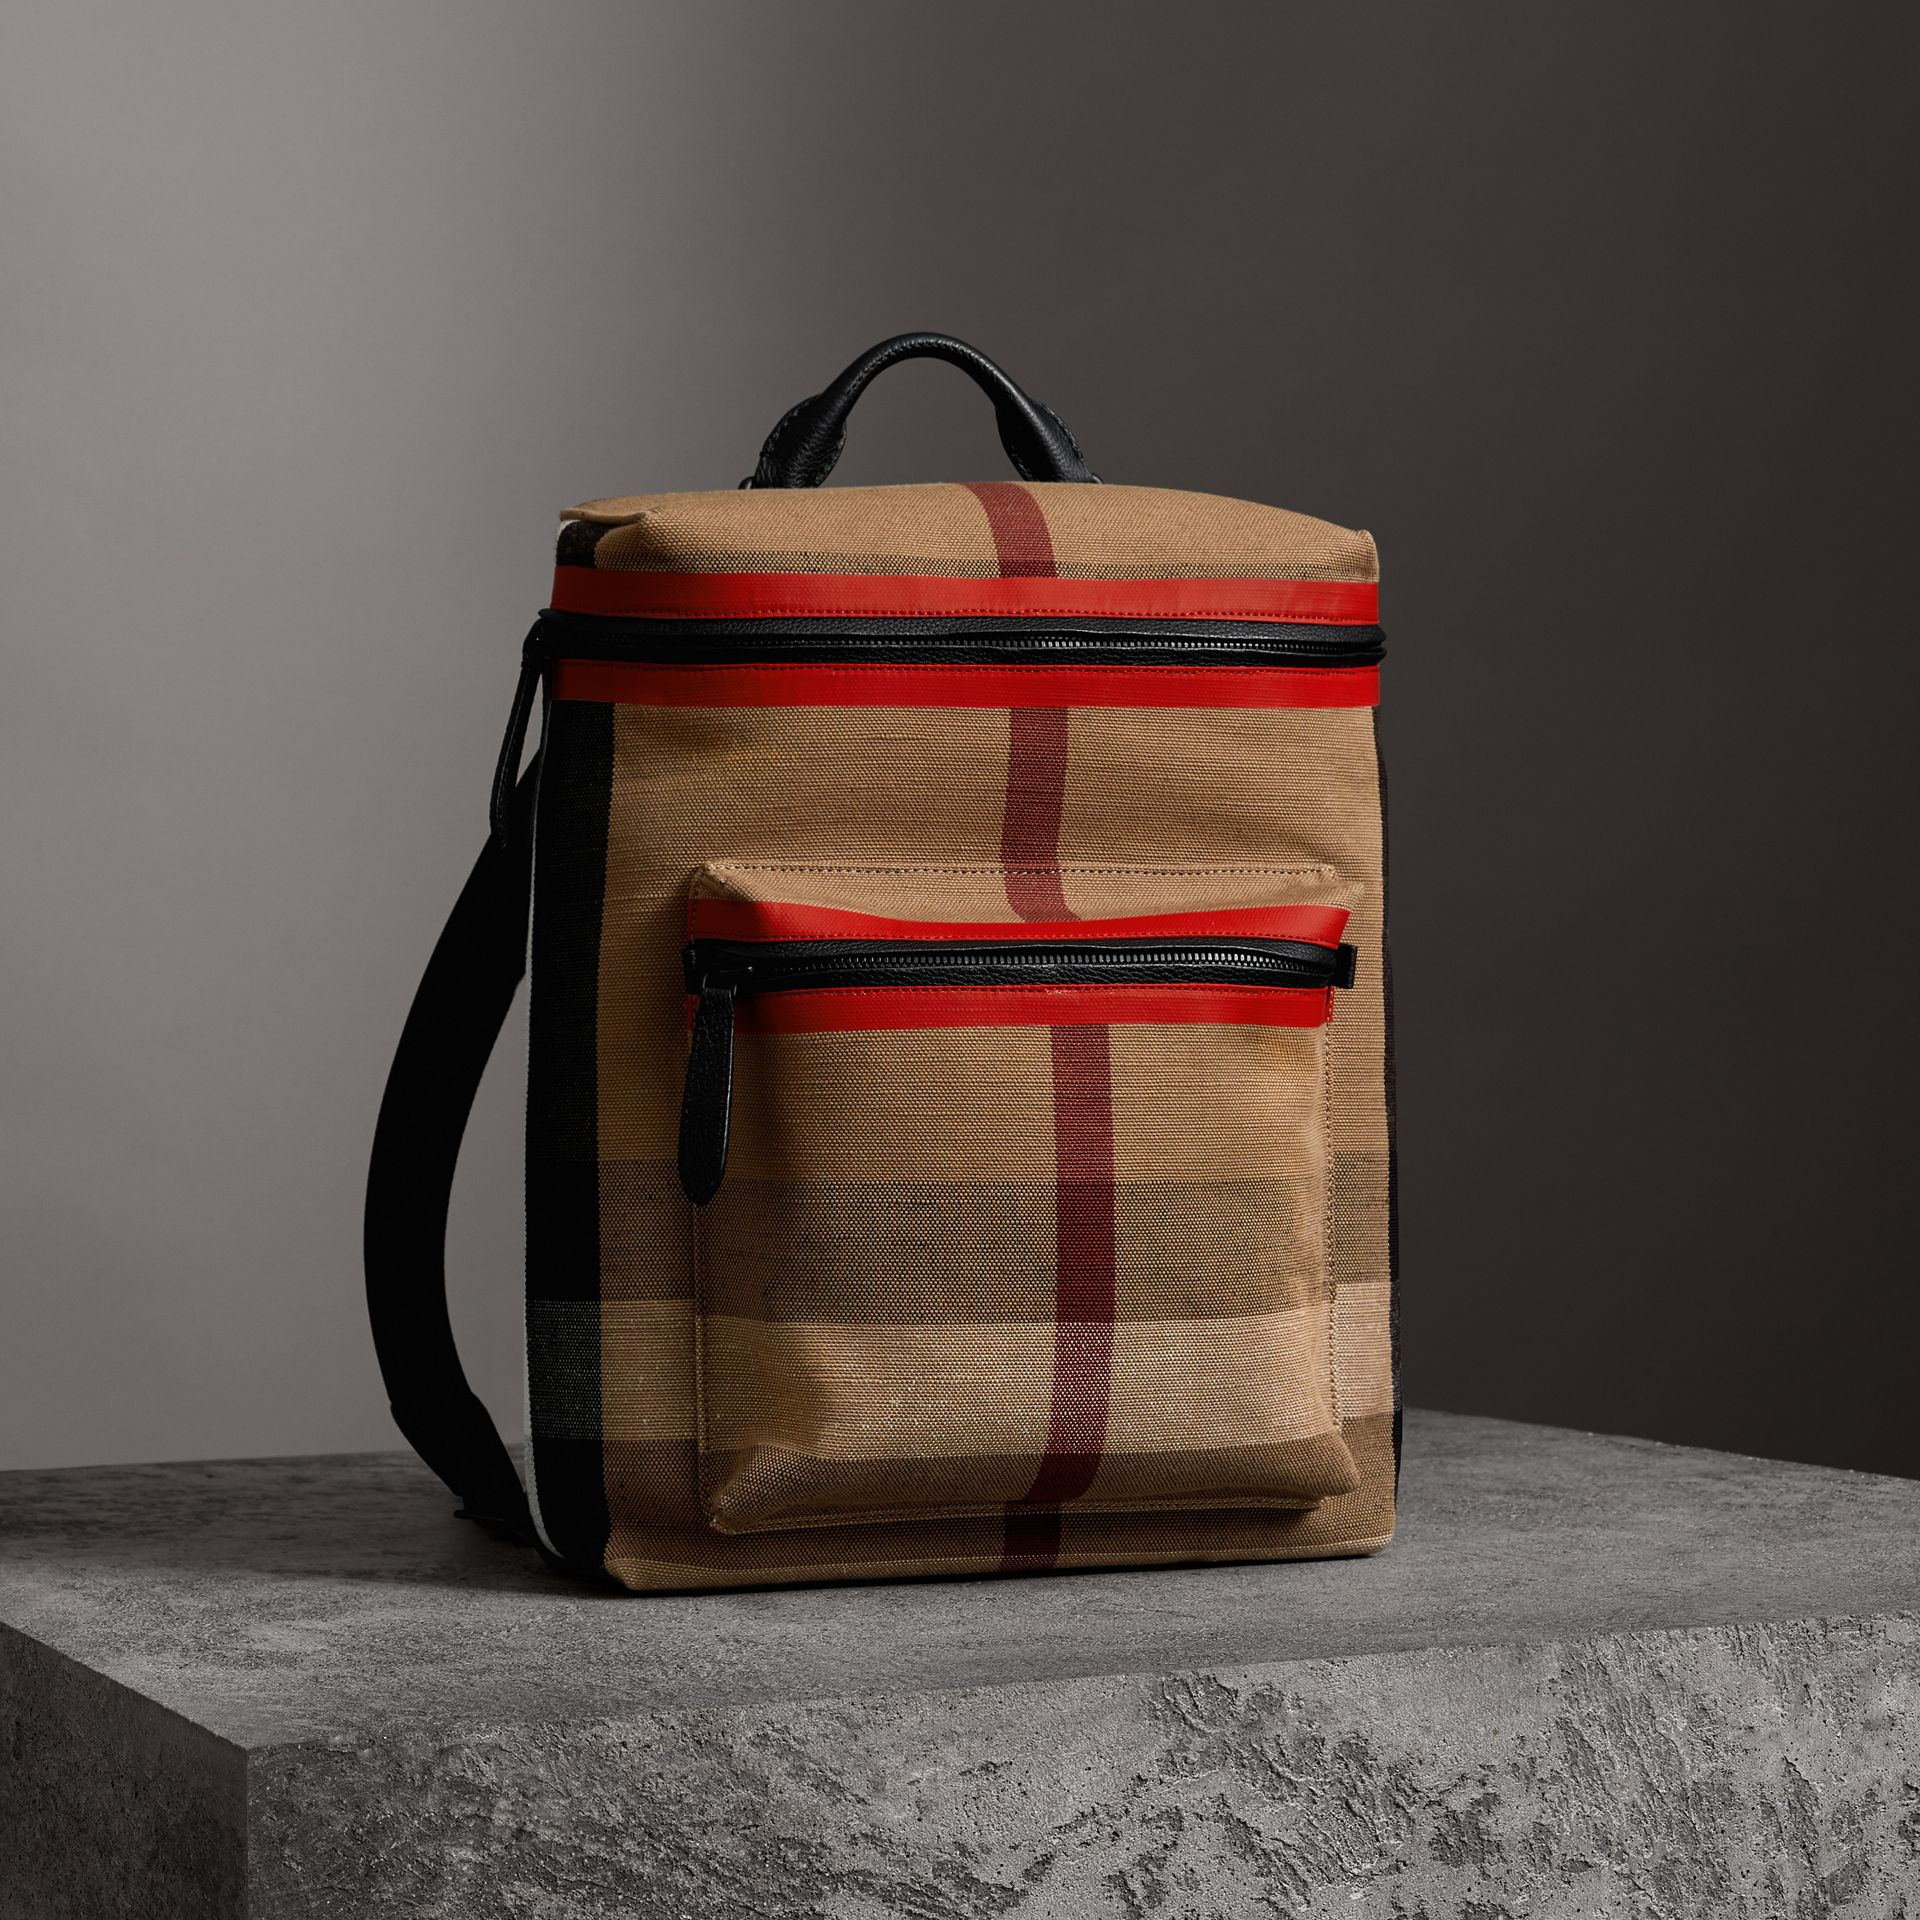 Zip-top Leather Trim Canvas Check Backpack in Military Red/camel - Men | Burberry - gallery image 3